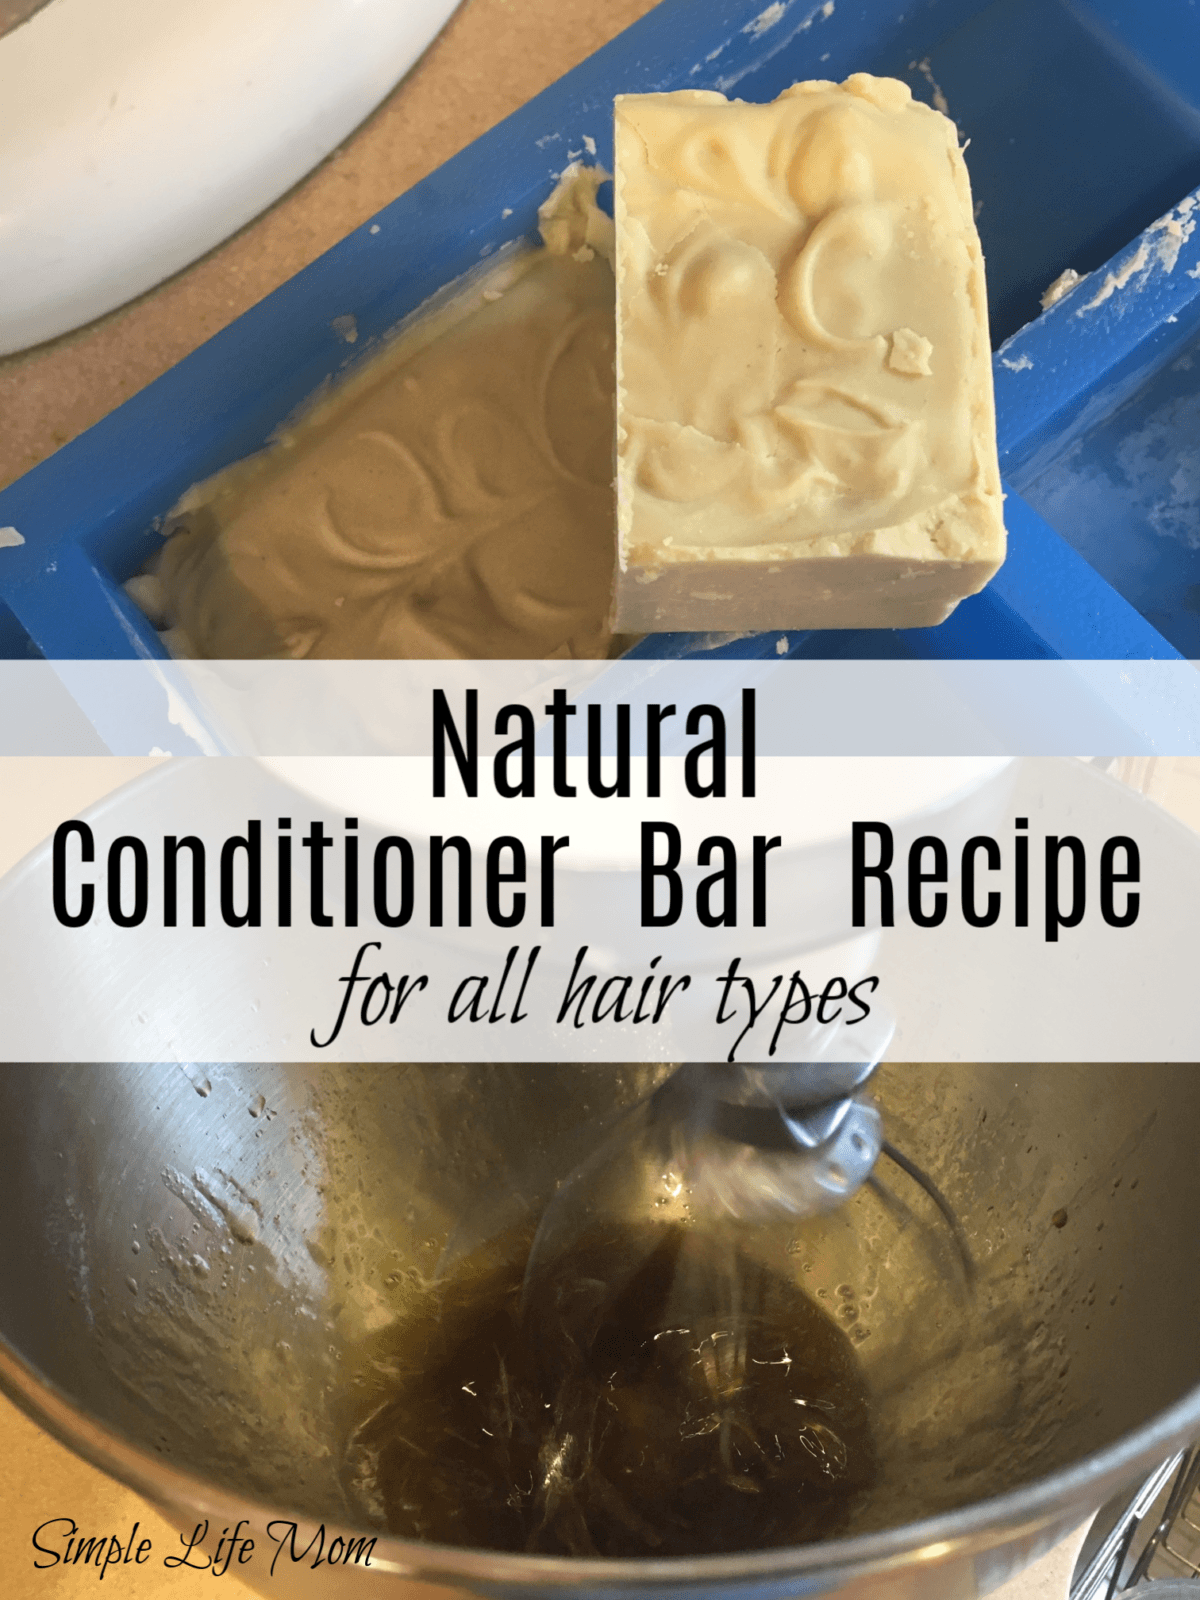 Conditioner Bar Recipe for All Hair Types